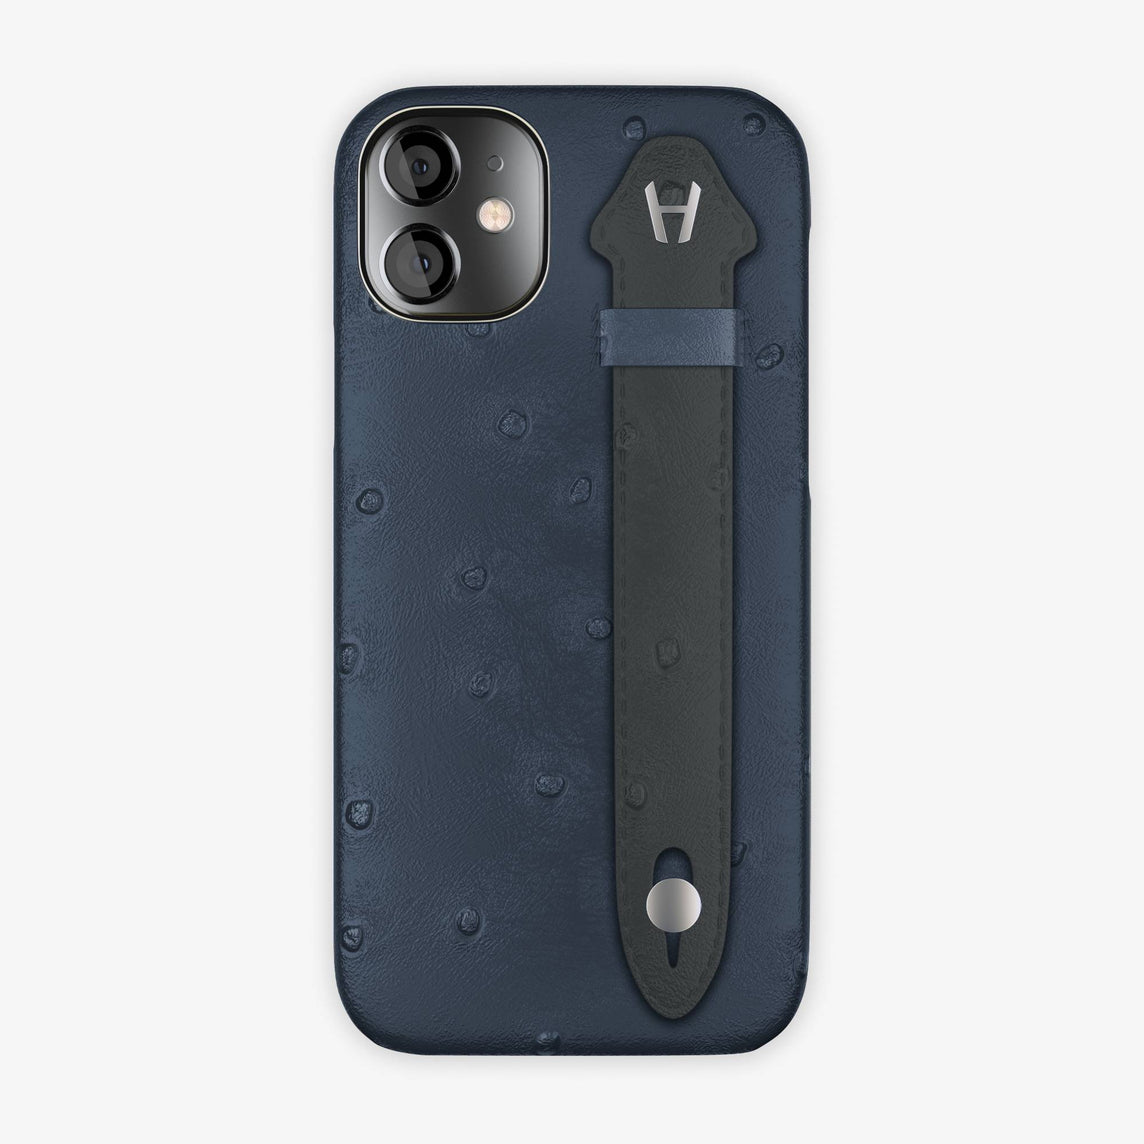 Ostrich Side Finger Case iPhone 12 Mini | Navy Blue/Anthracite - Stainless Steel